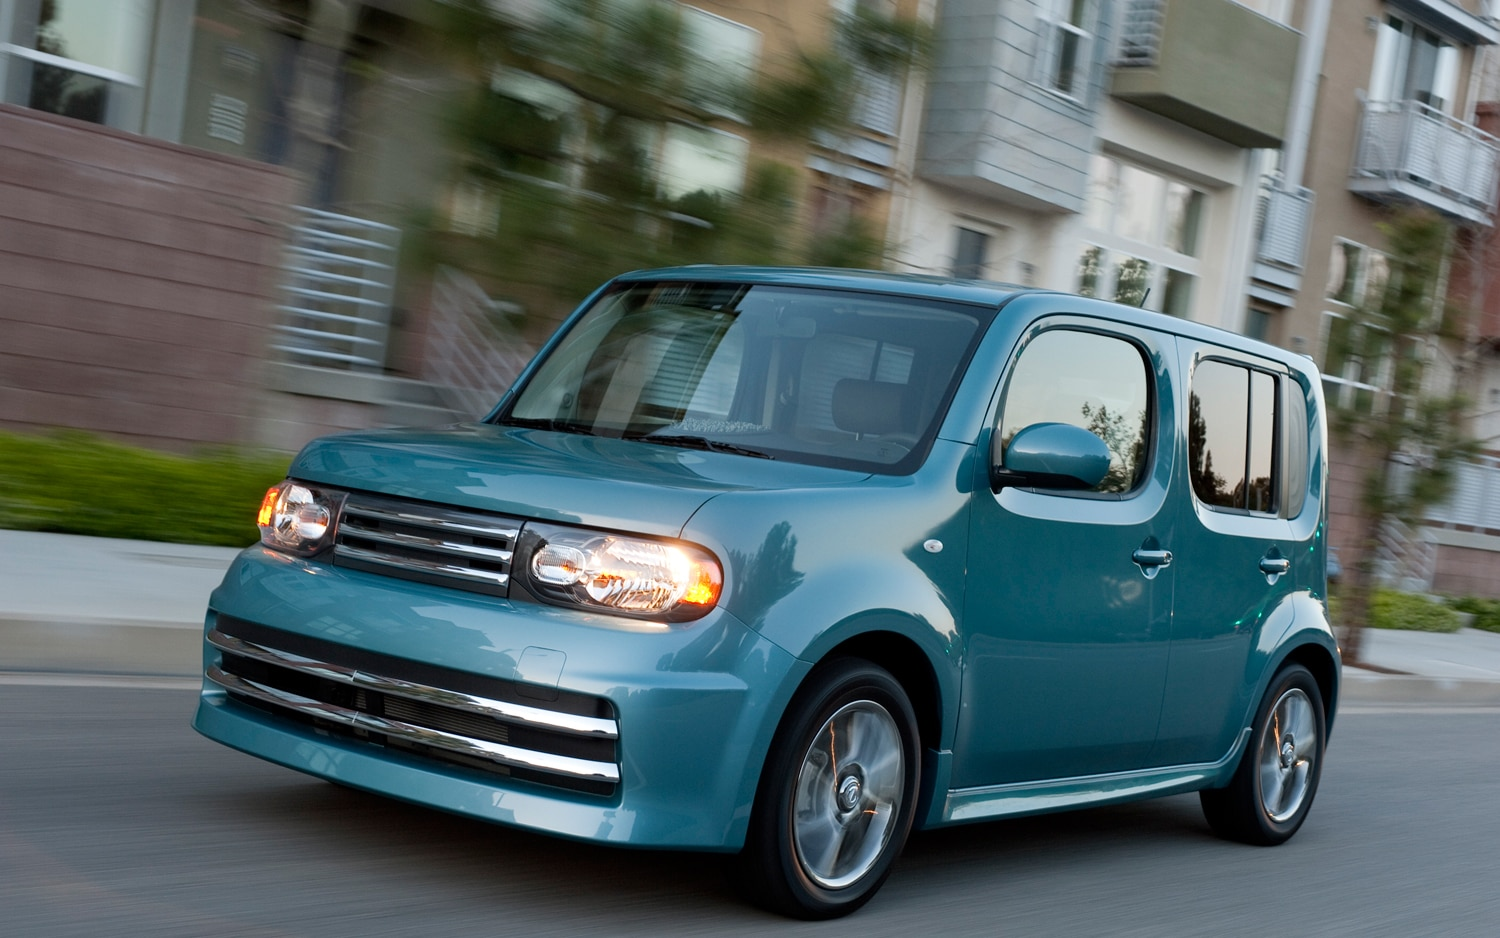 2011 Nissan Cube KROM Front Left View 3